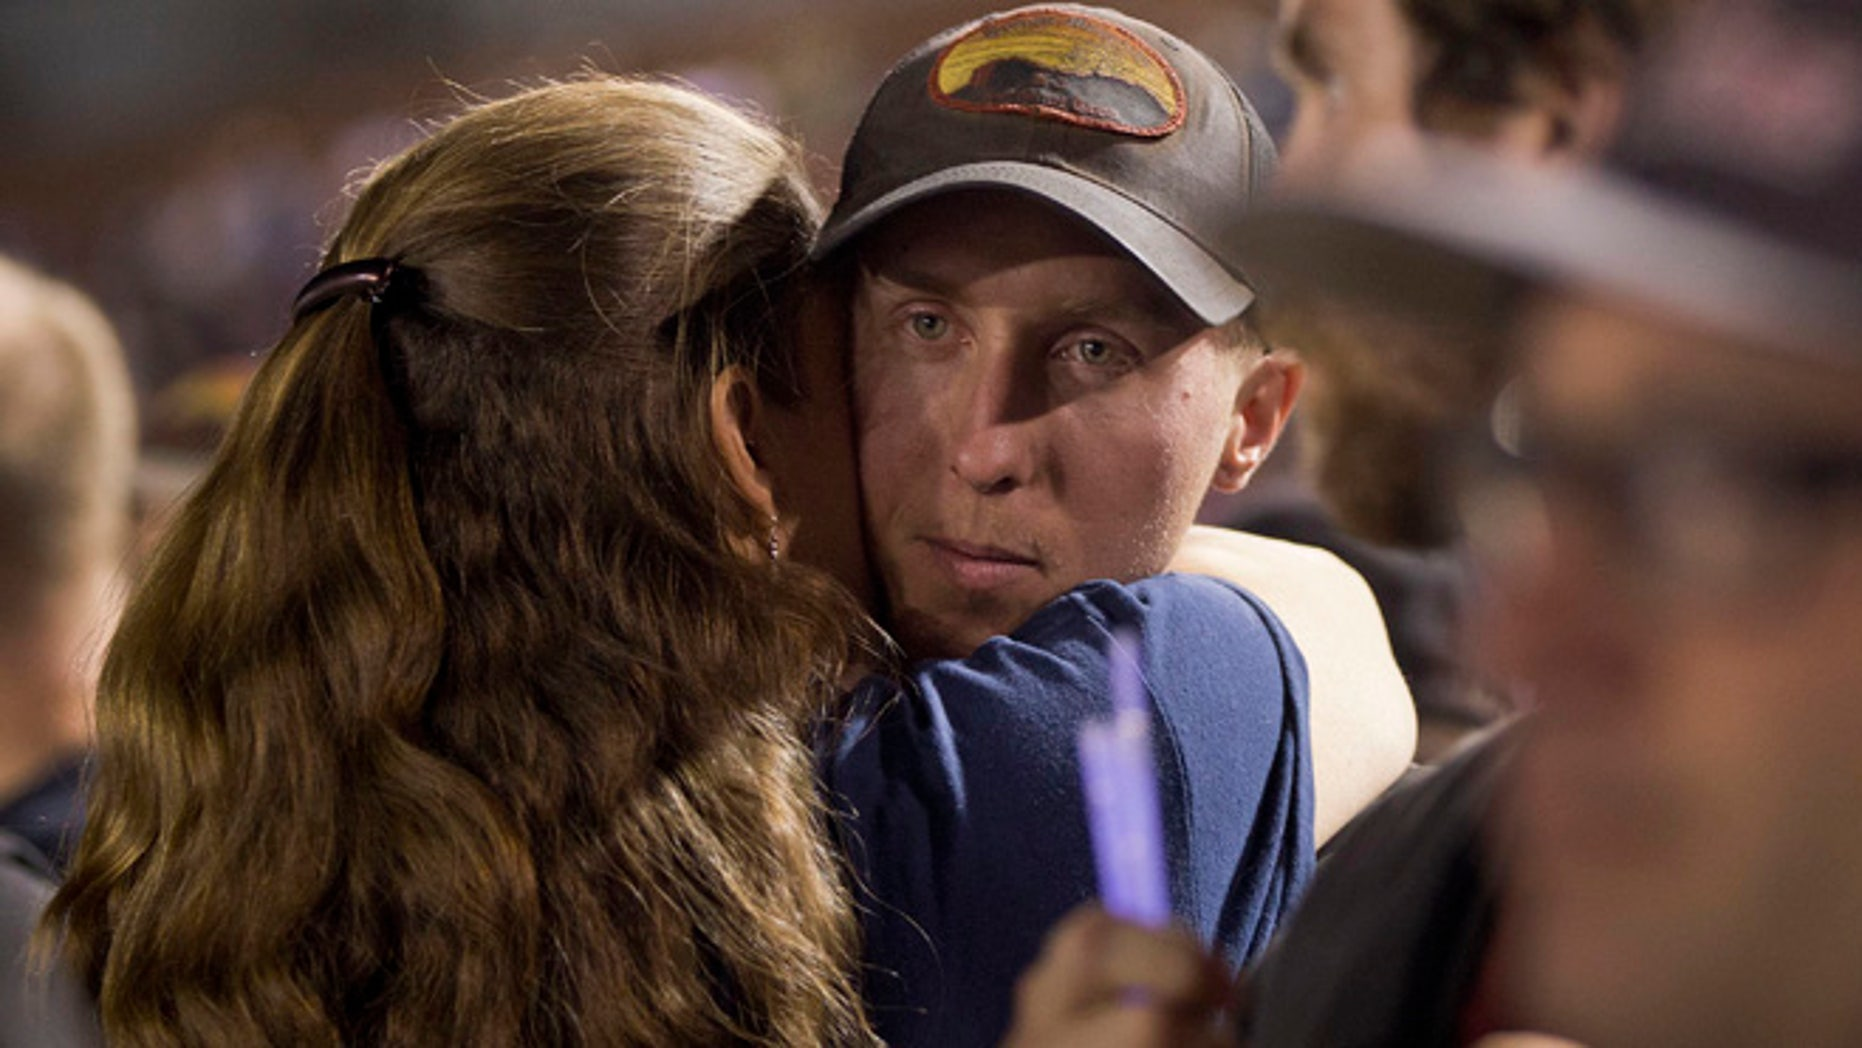 In this July 2, 2013 file photo, firefighter Brendan McDonough embraces a mourner near the end of a candlelight vigil in Prescott, Ariz. McDonough was the sole survivor of the 20-man Granite Mountain Hotshot Crew after an out-of-control blaze killed the 19 near Yarnell, Ariz. Investigators are set to release a report Saturday, Sept. 28, 2013, on the deaths of the 19 elite firefighters who became trapped by flames in a brush-choked canyon north of Phoenix.